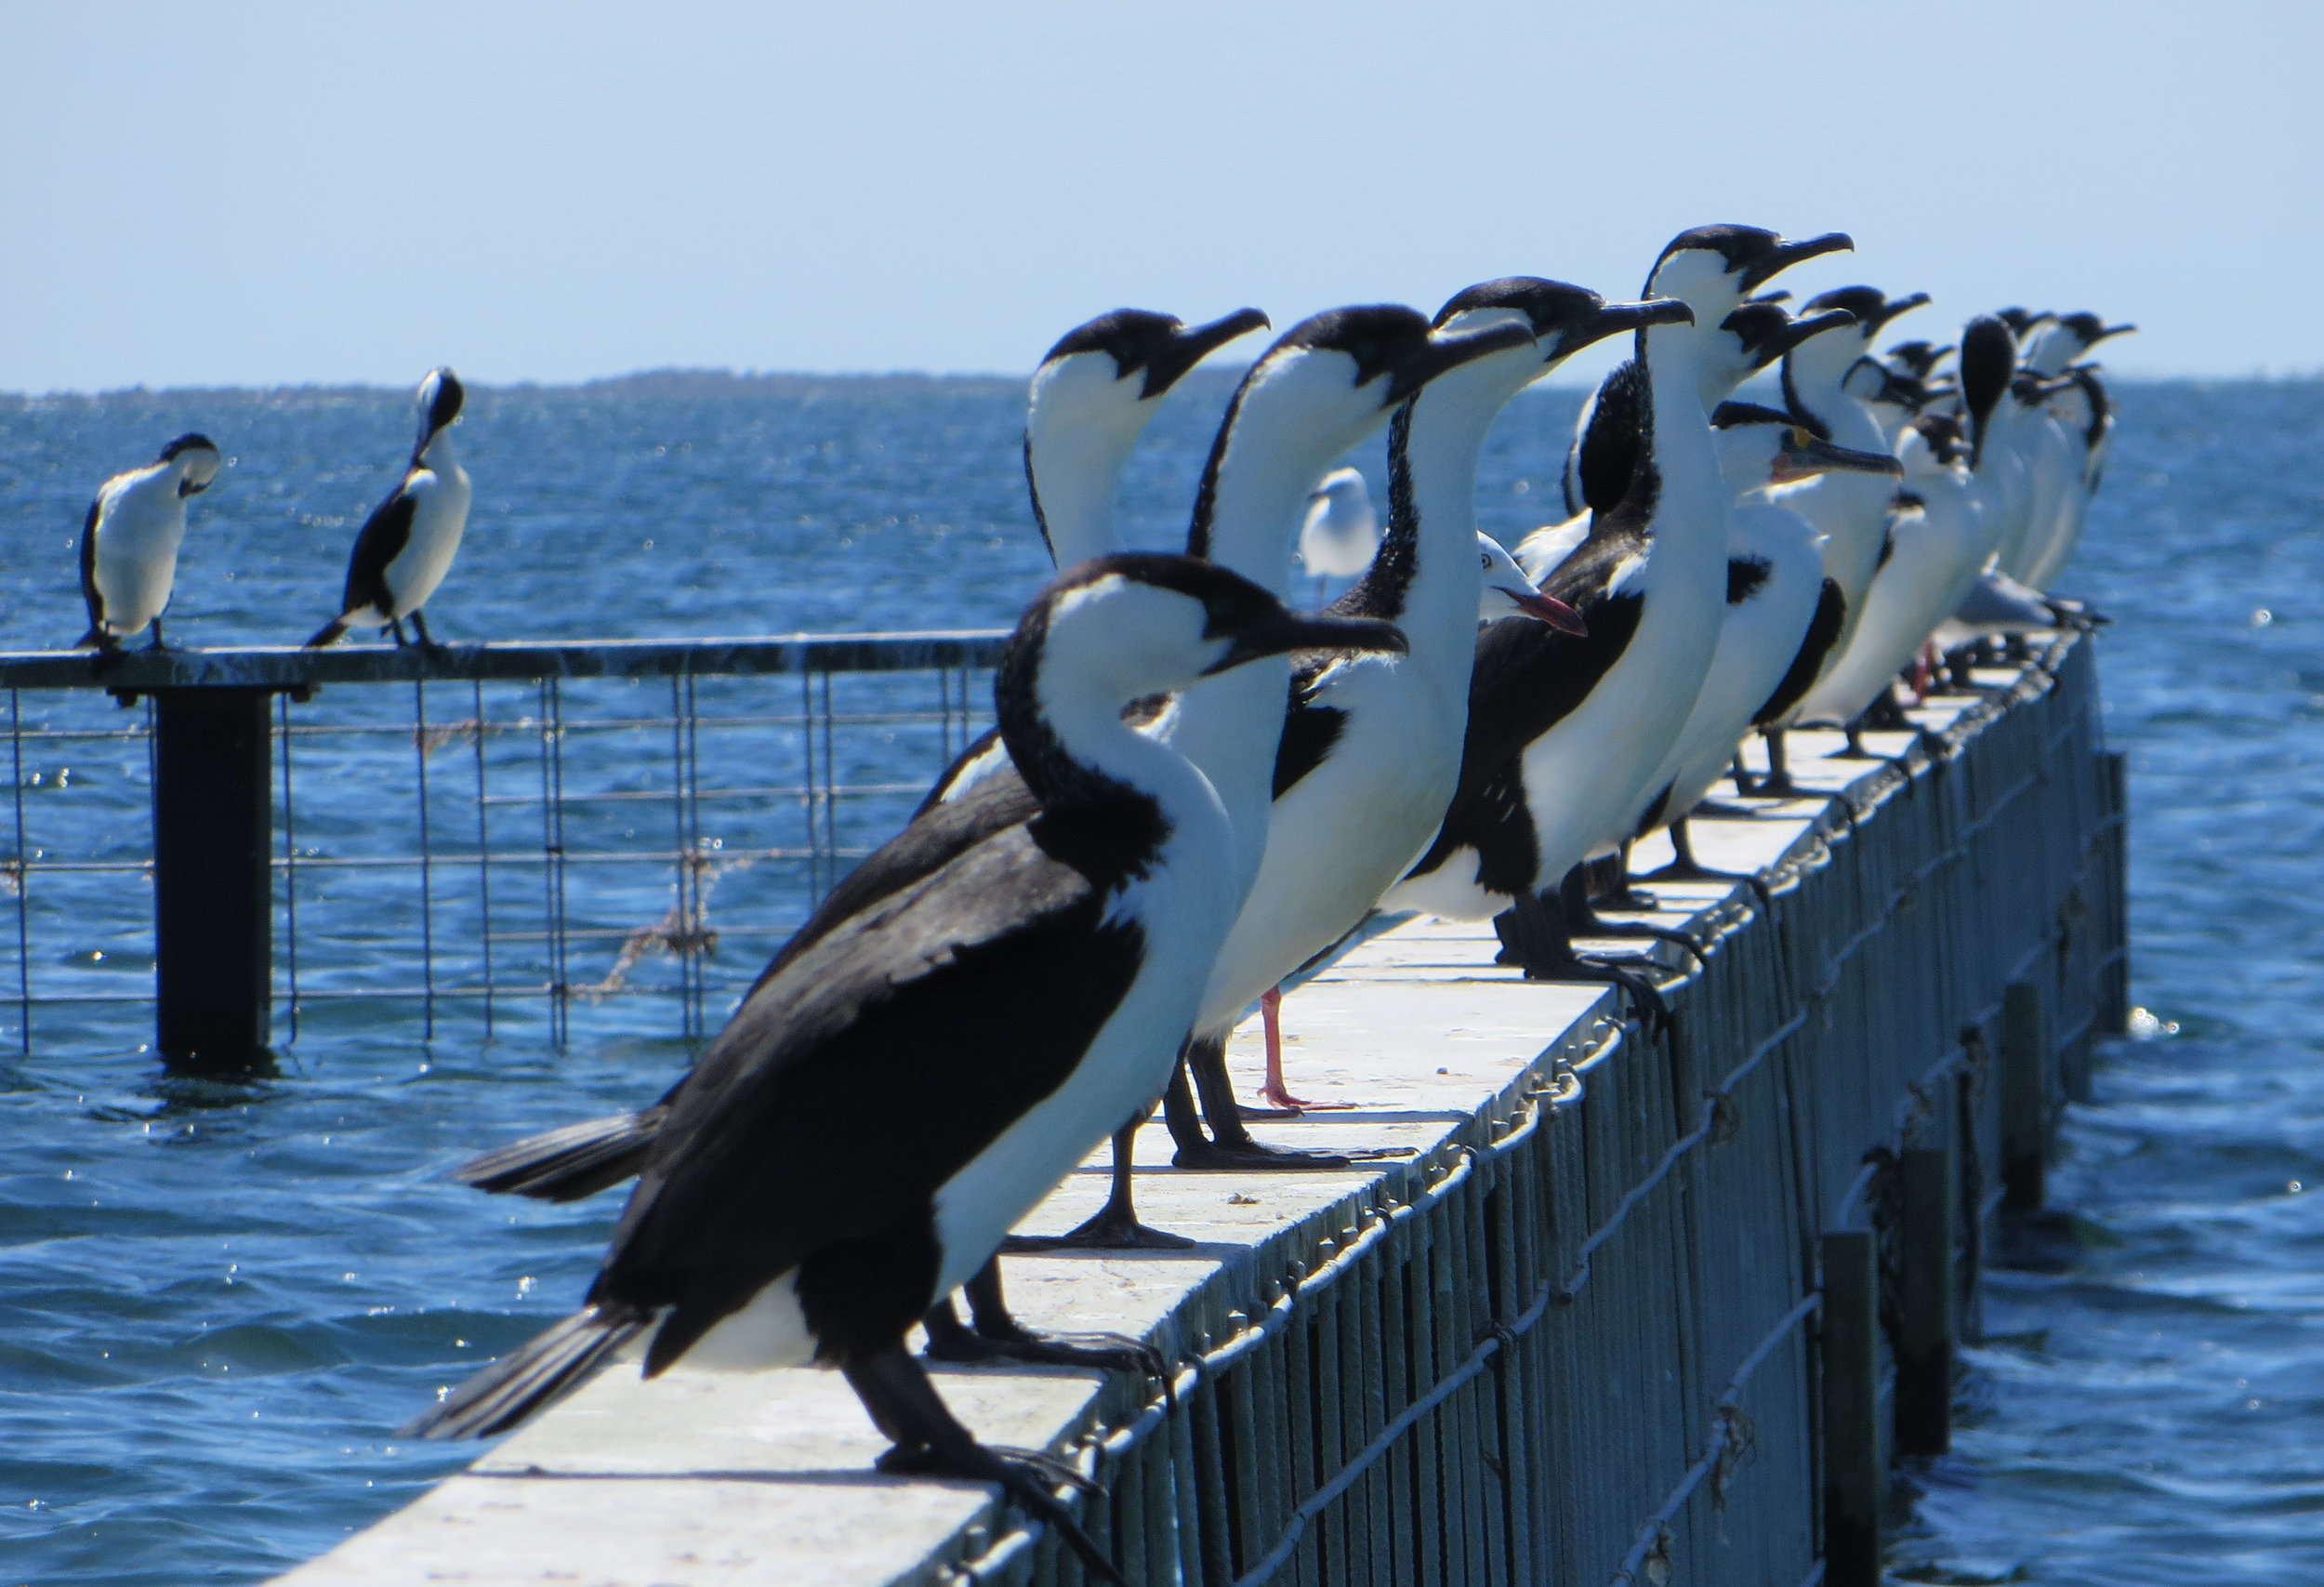 Black-faced cormorants line the rail